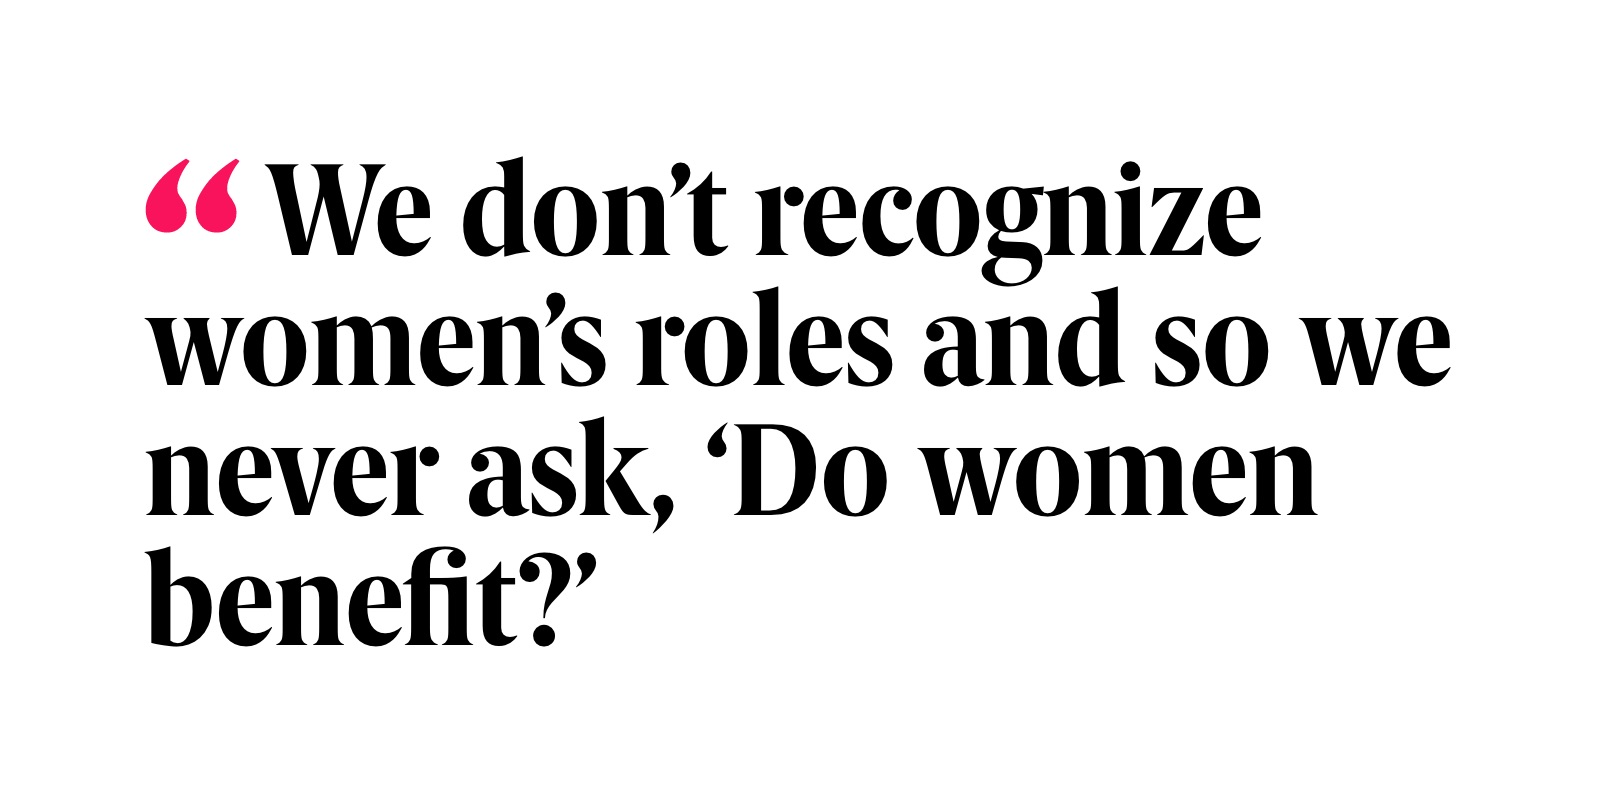 Pull quote: We don't recognize women's roles and so we never ask, 'Do women benefit?'